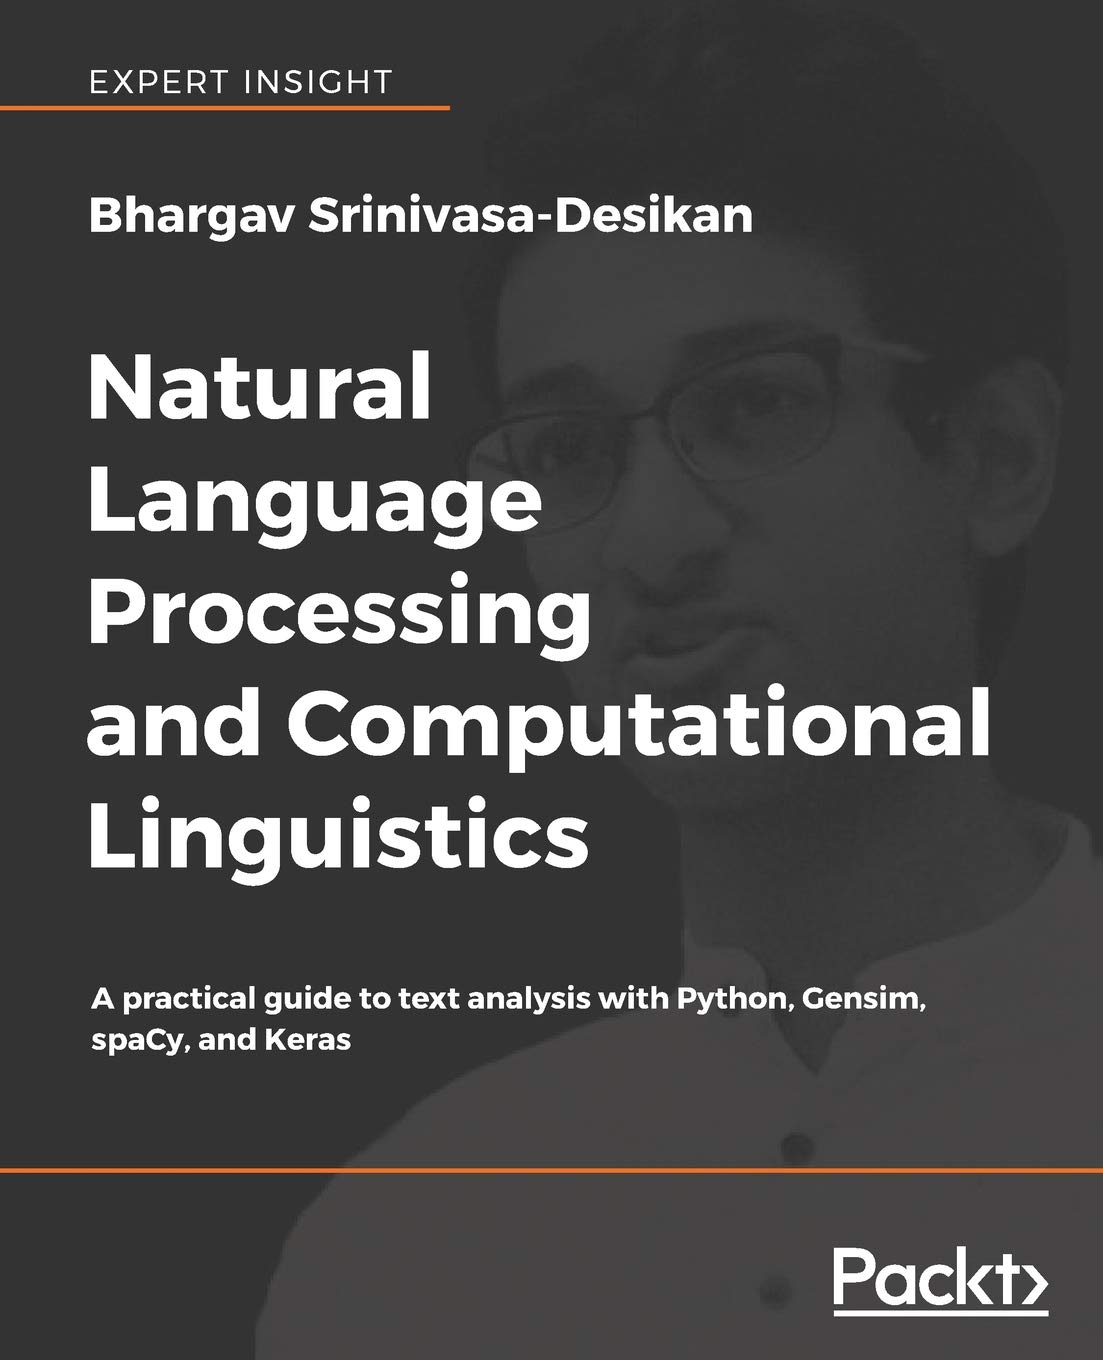 Natural Language Processing and Computational Linguistics: A practical guide to text analysis with Python, Gensim, spaCy, and Keras by Packt Publishing - ebooks Account